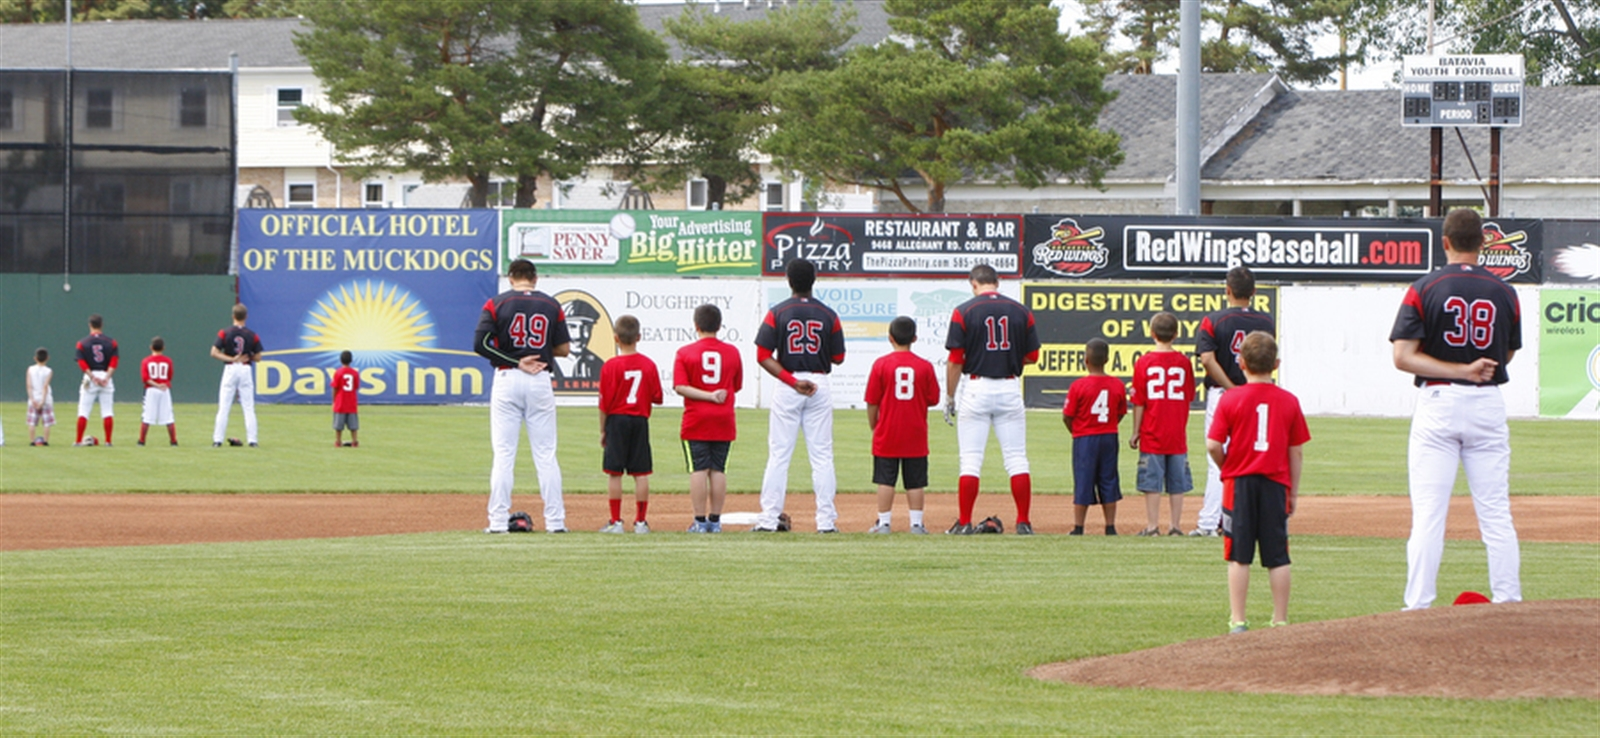 1005452663 muckdogs scull 027